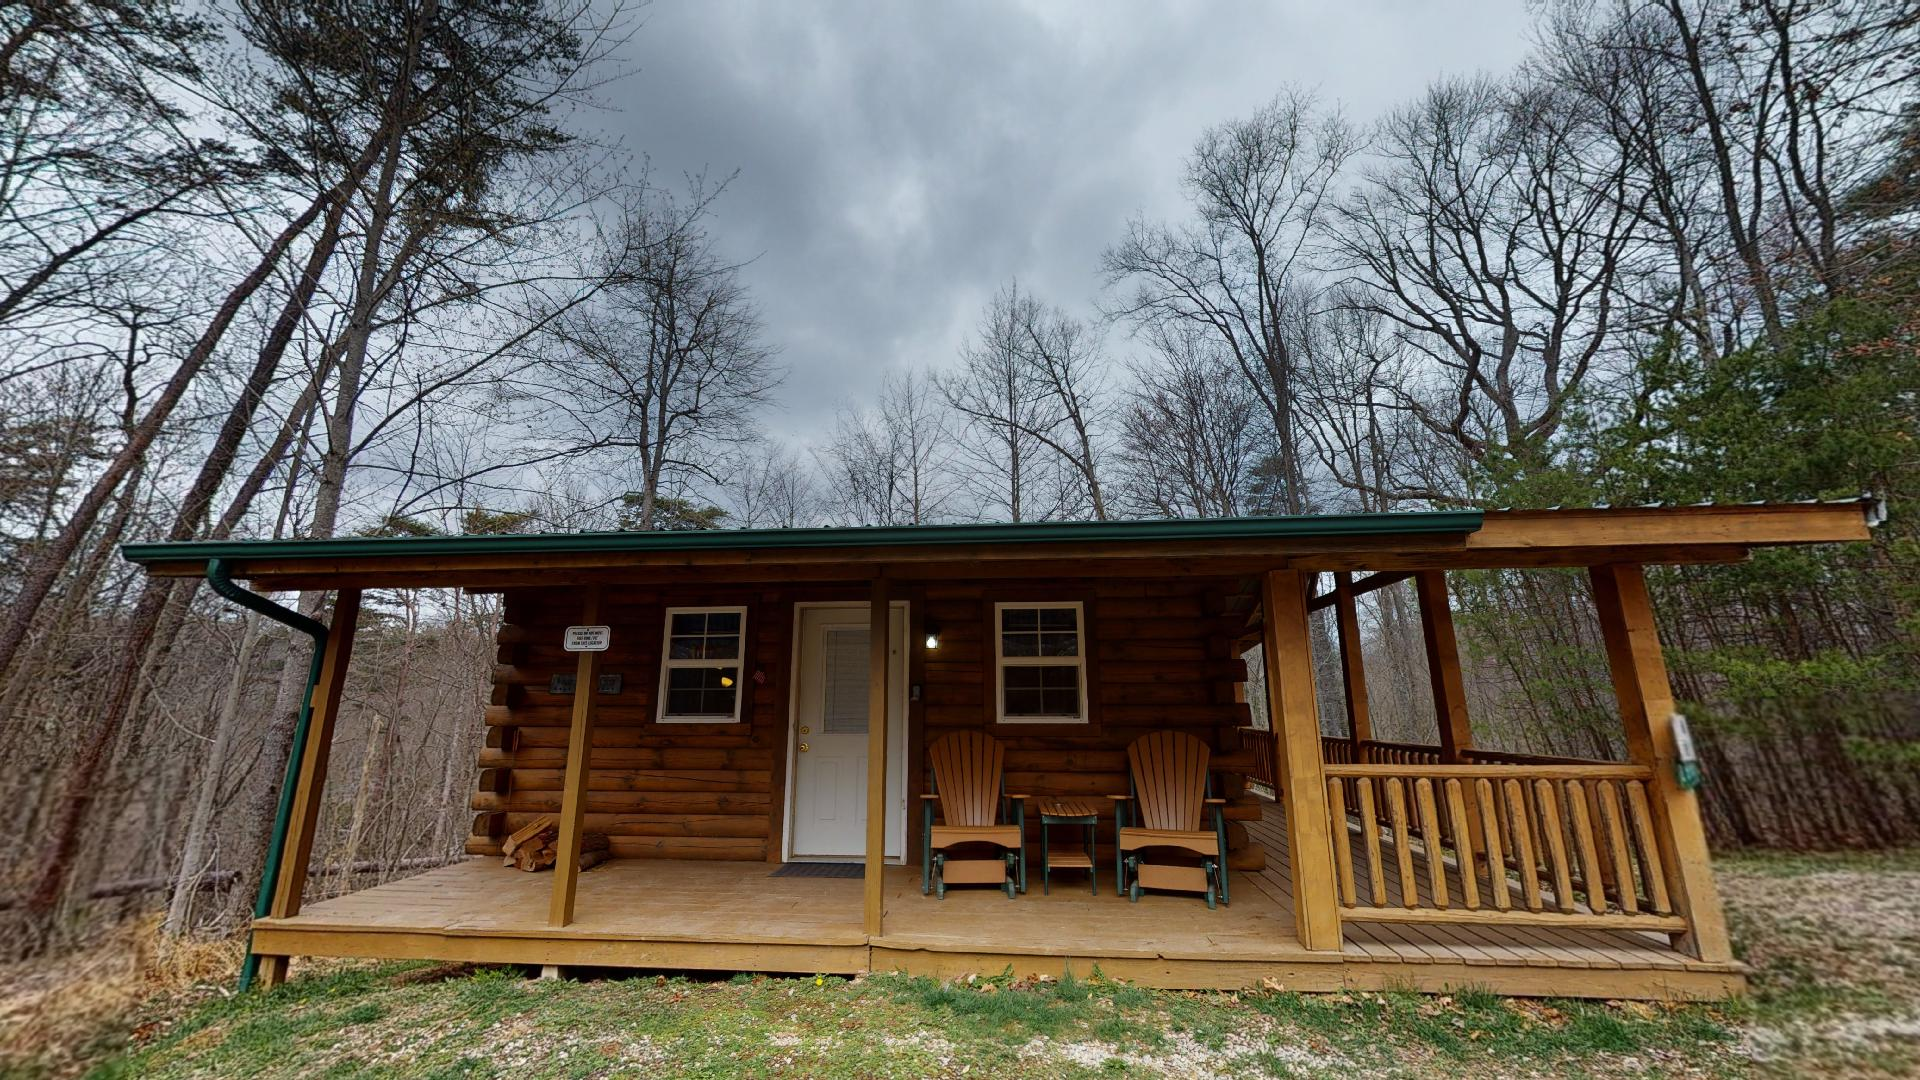 Silver Wolf Pet Friendly! - Pet friendly under 30 lbs couples cabin.